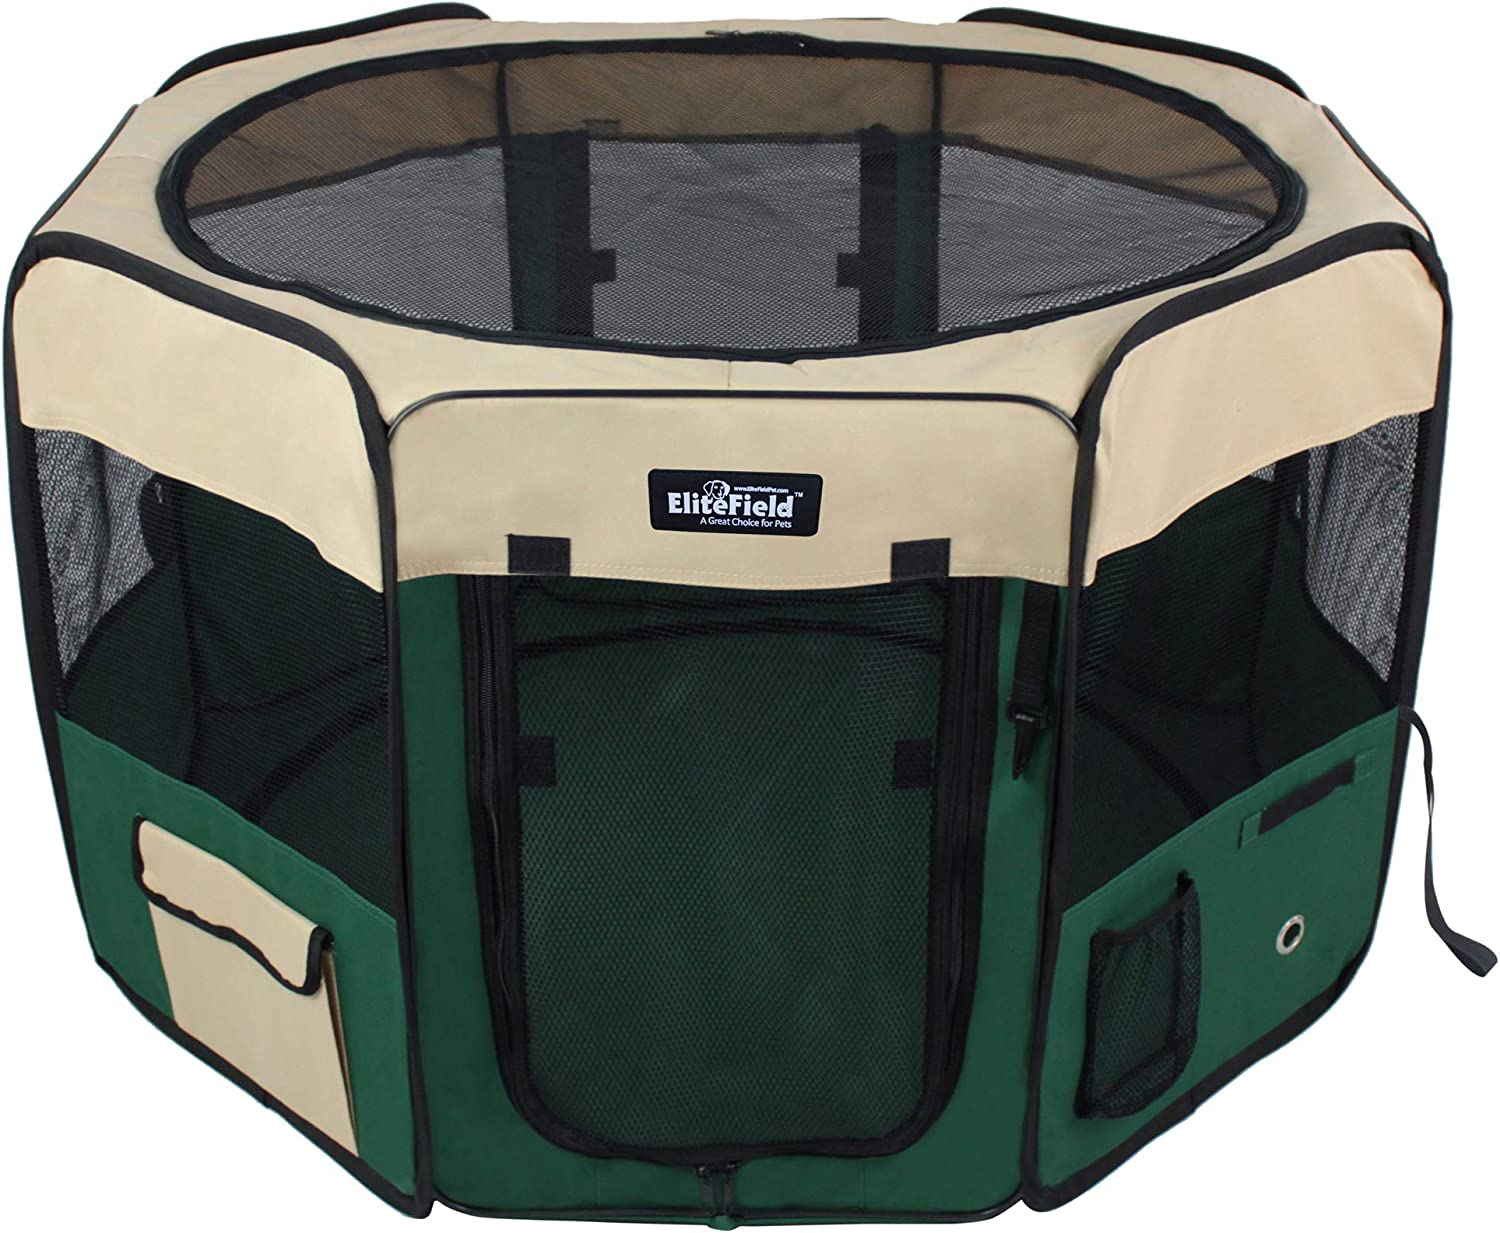 EliteField 2-Door Soft Pet Playpen Multiple Sizes and Colors Available for Dogs Exercise Pen Cats and Other Pets